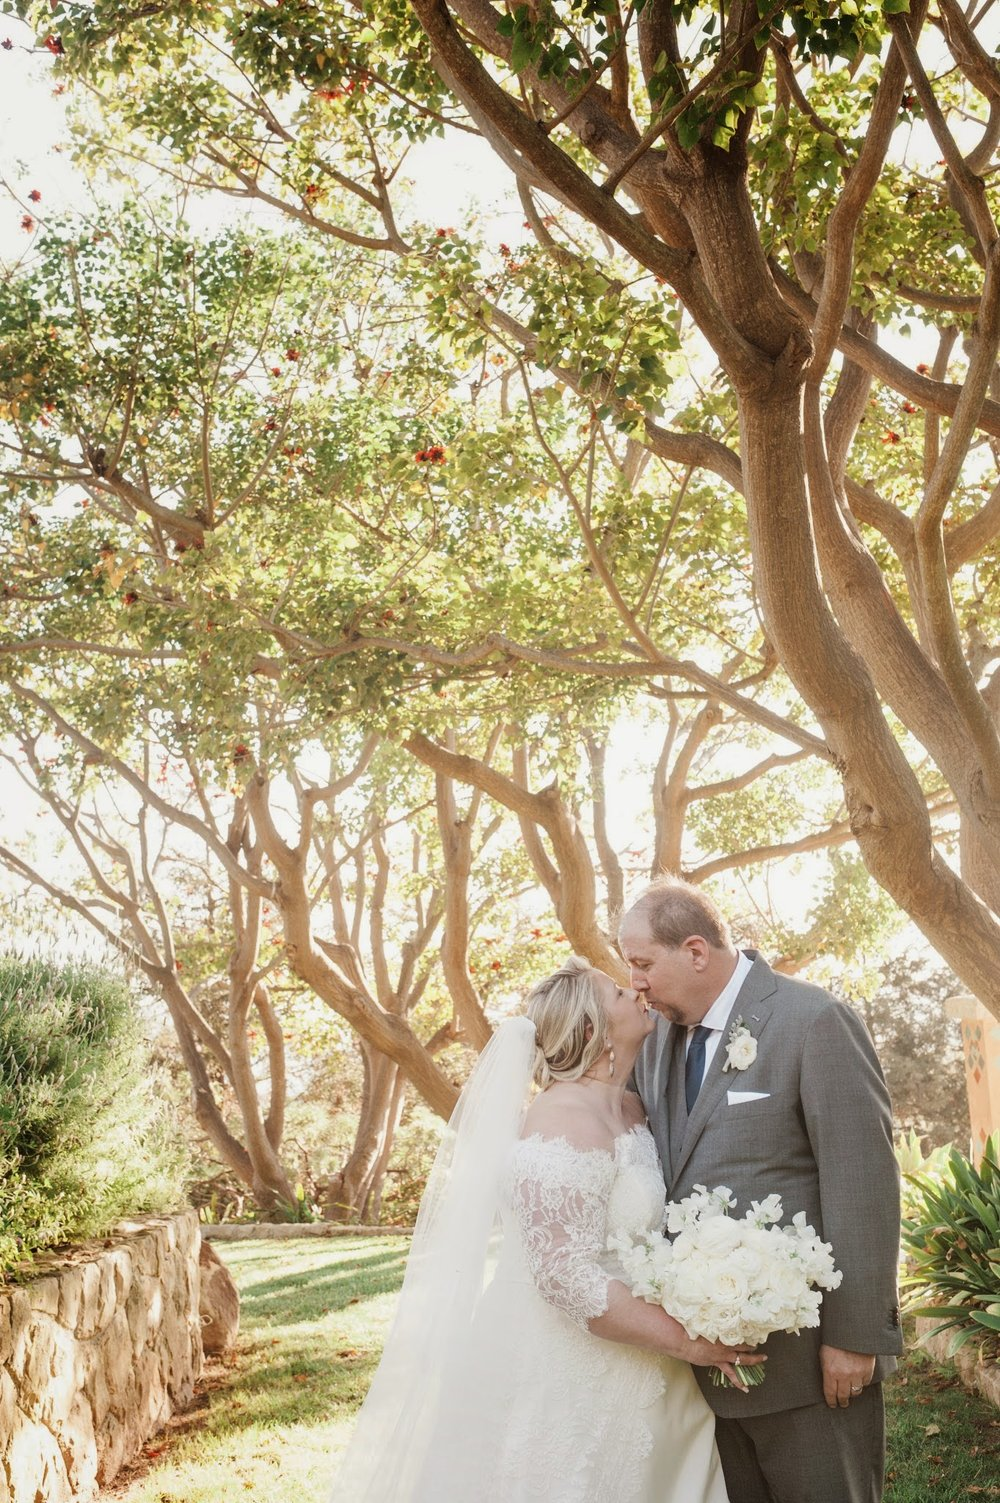 www.santabarbarawedding.com | Andrejka Photography | Villa Verano | Wedding Venue | Private Estate | Bride and Groom